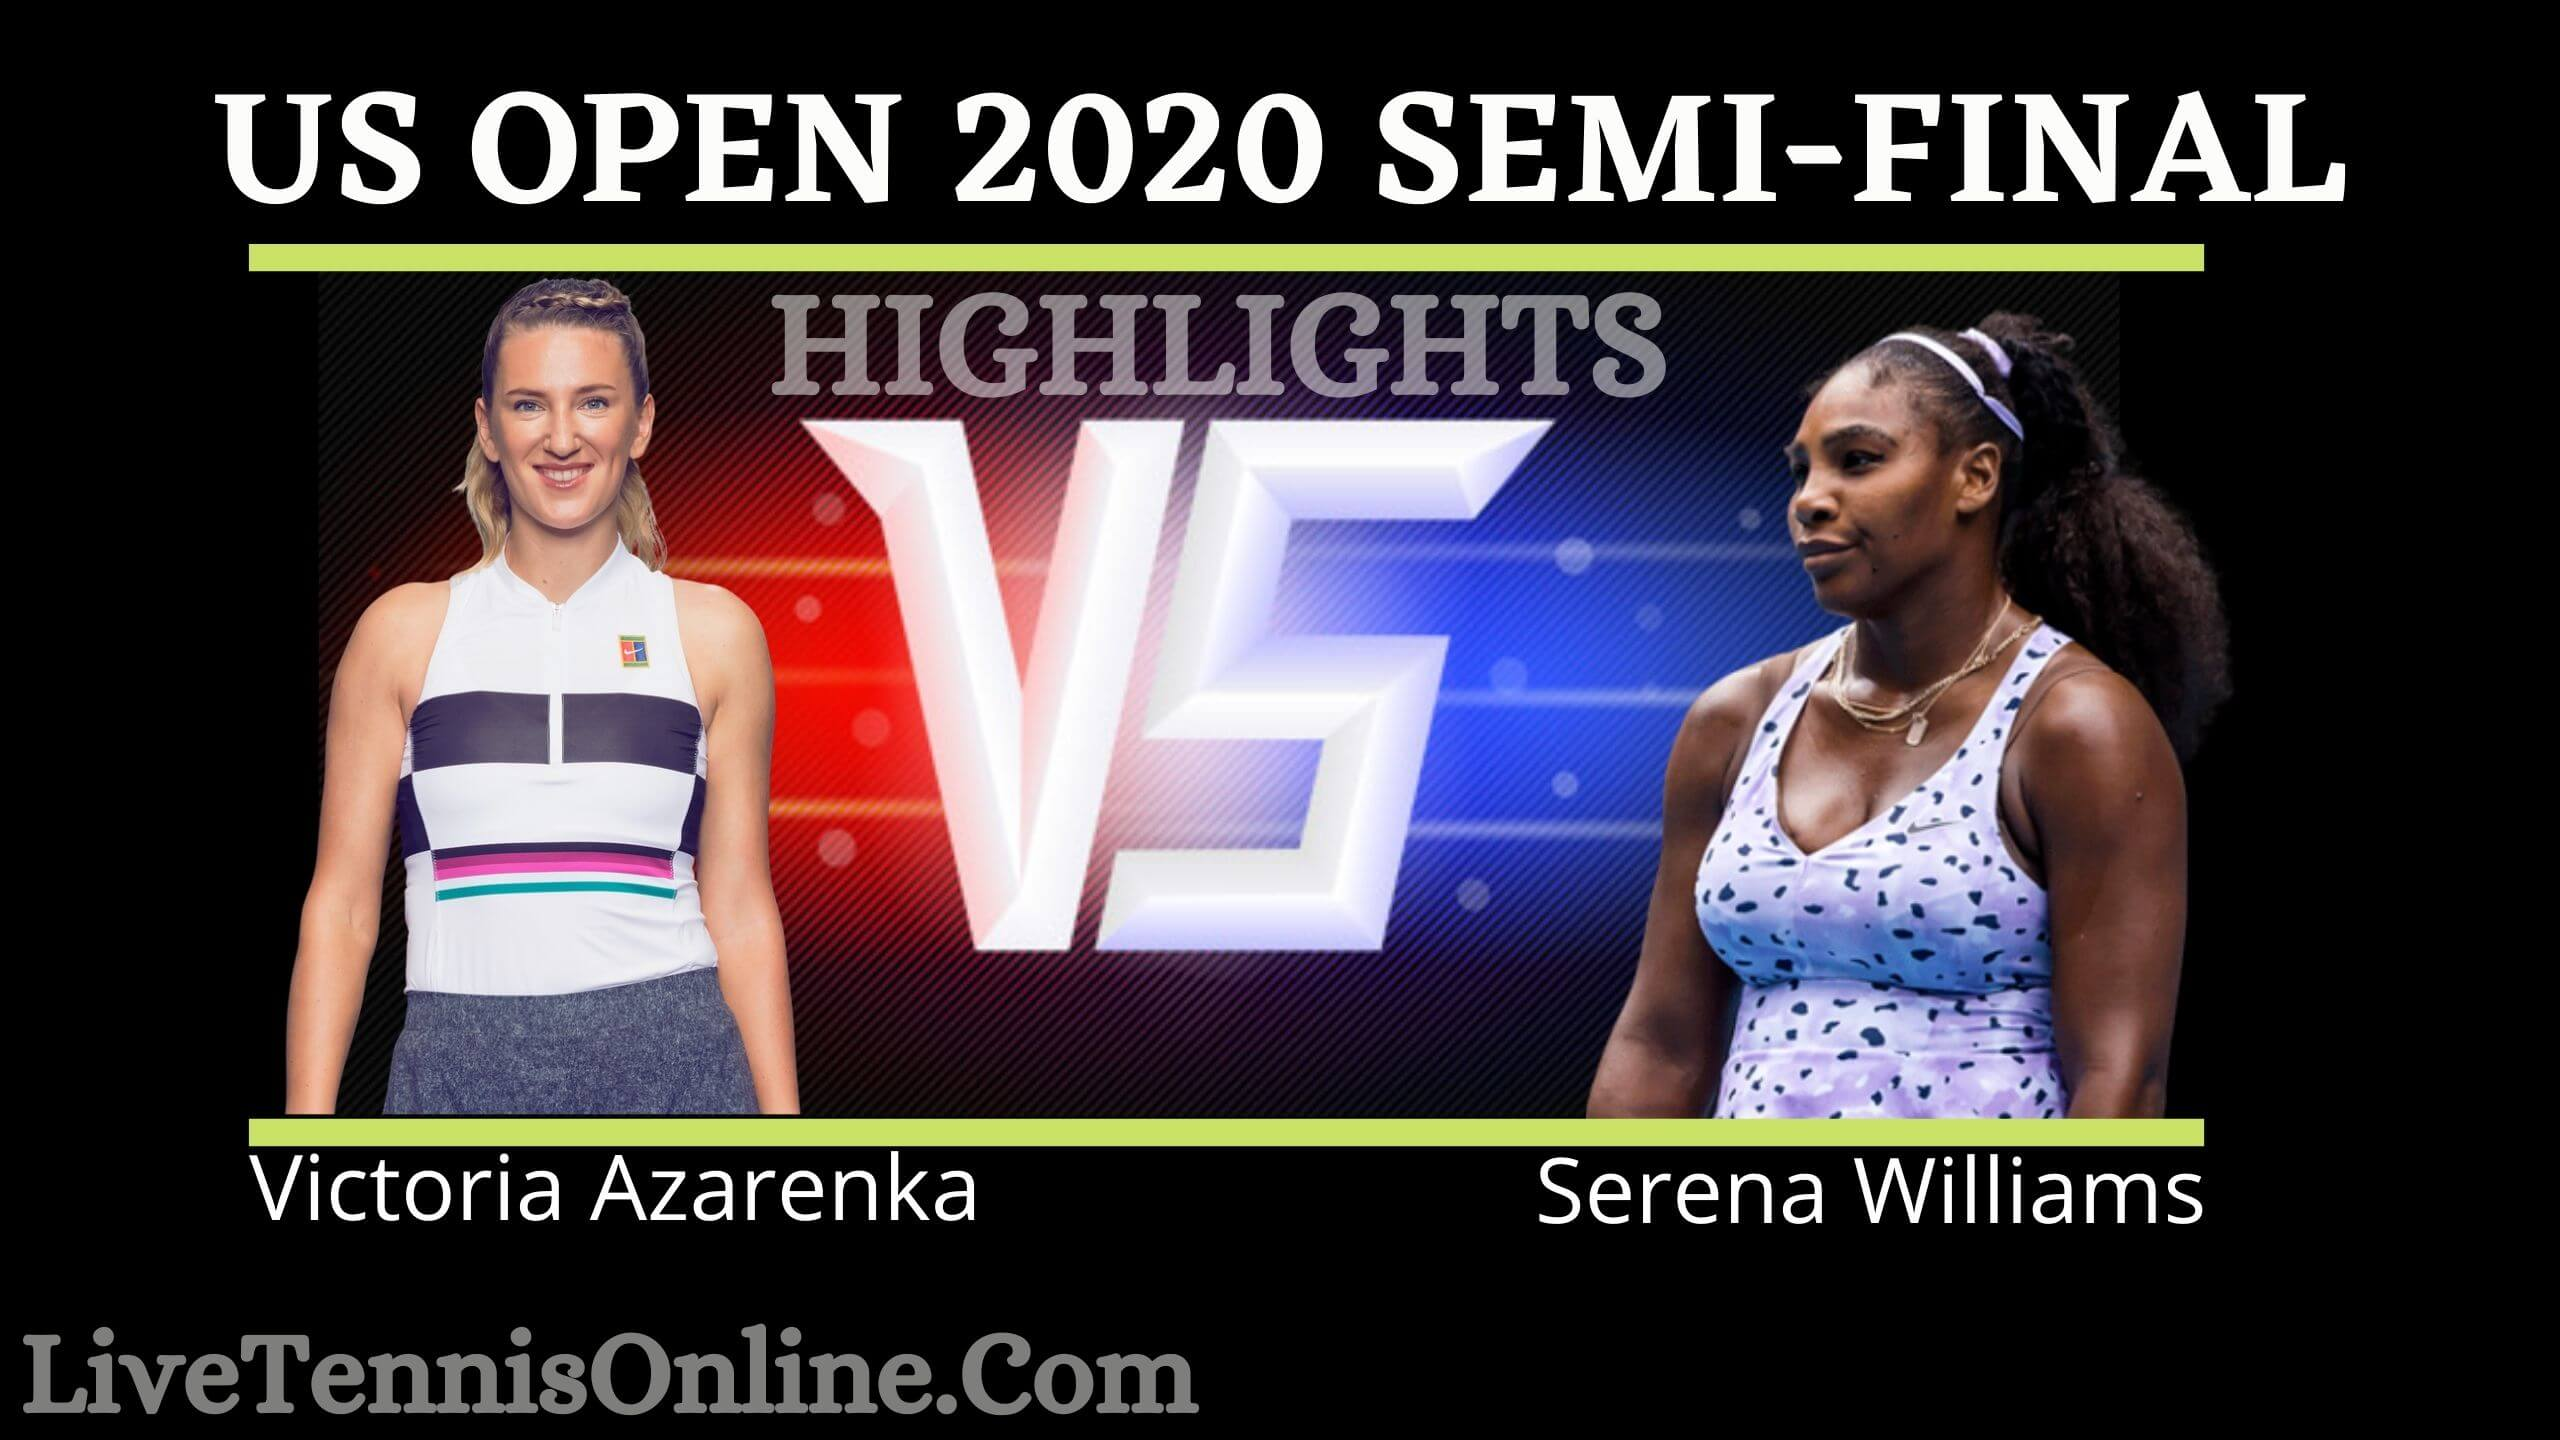 Williams Vs Azarenka US Open 2020 Semi Final Highlights